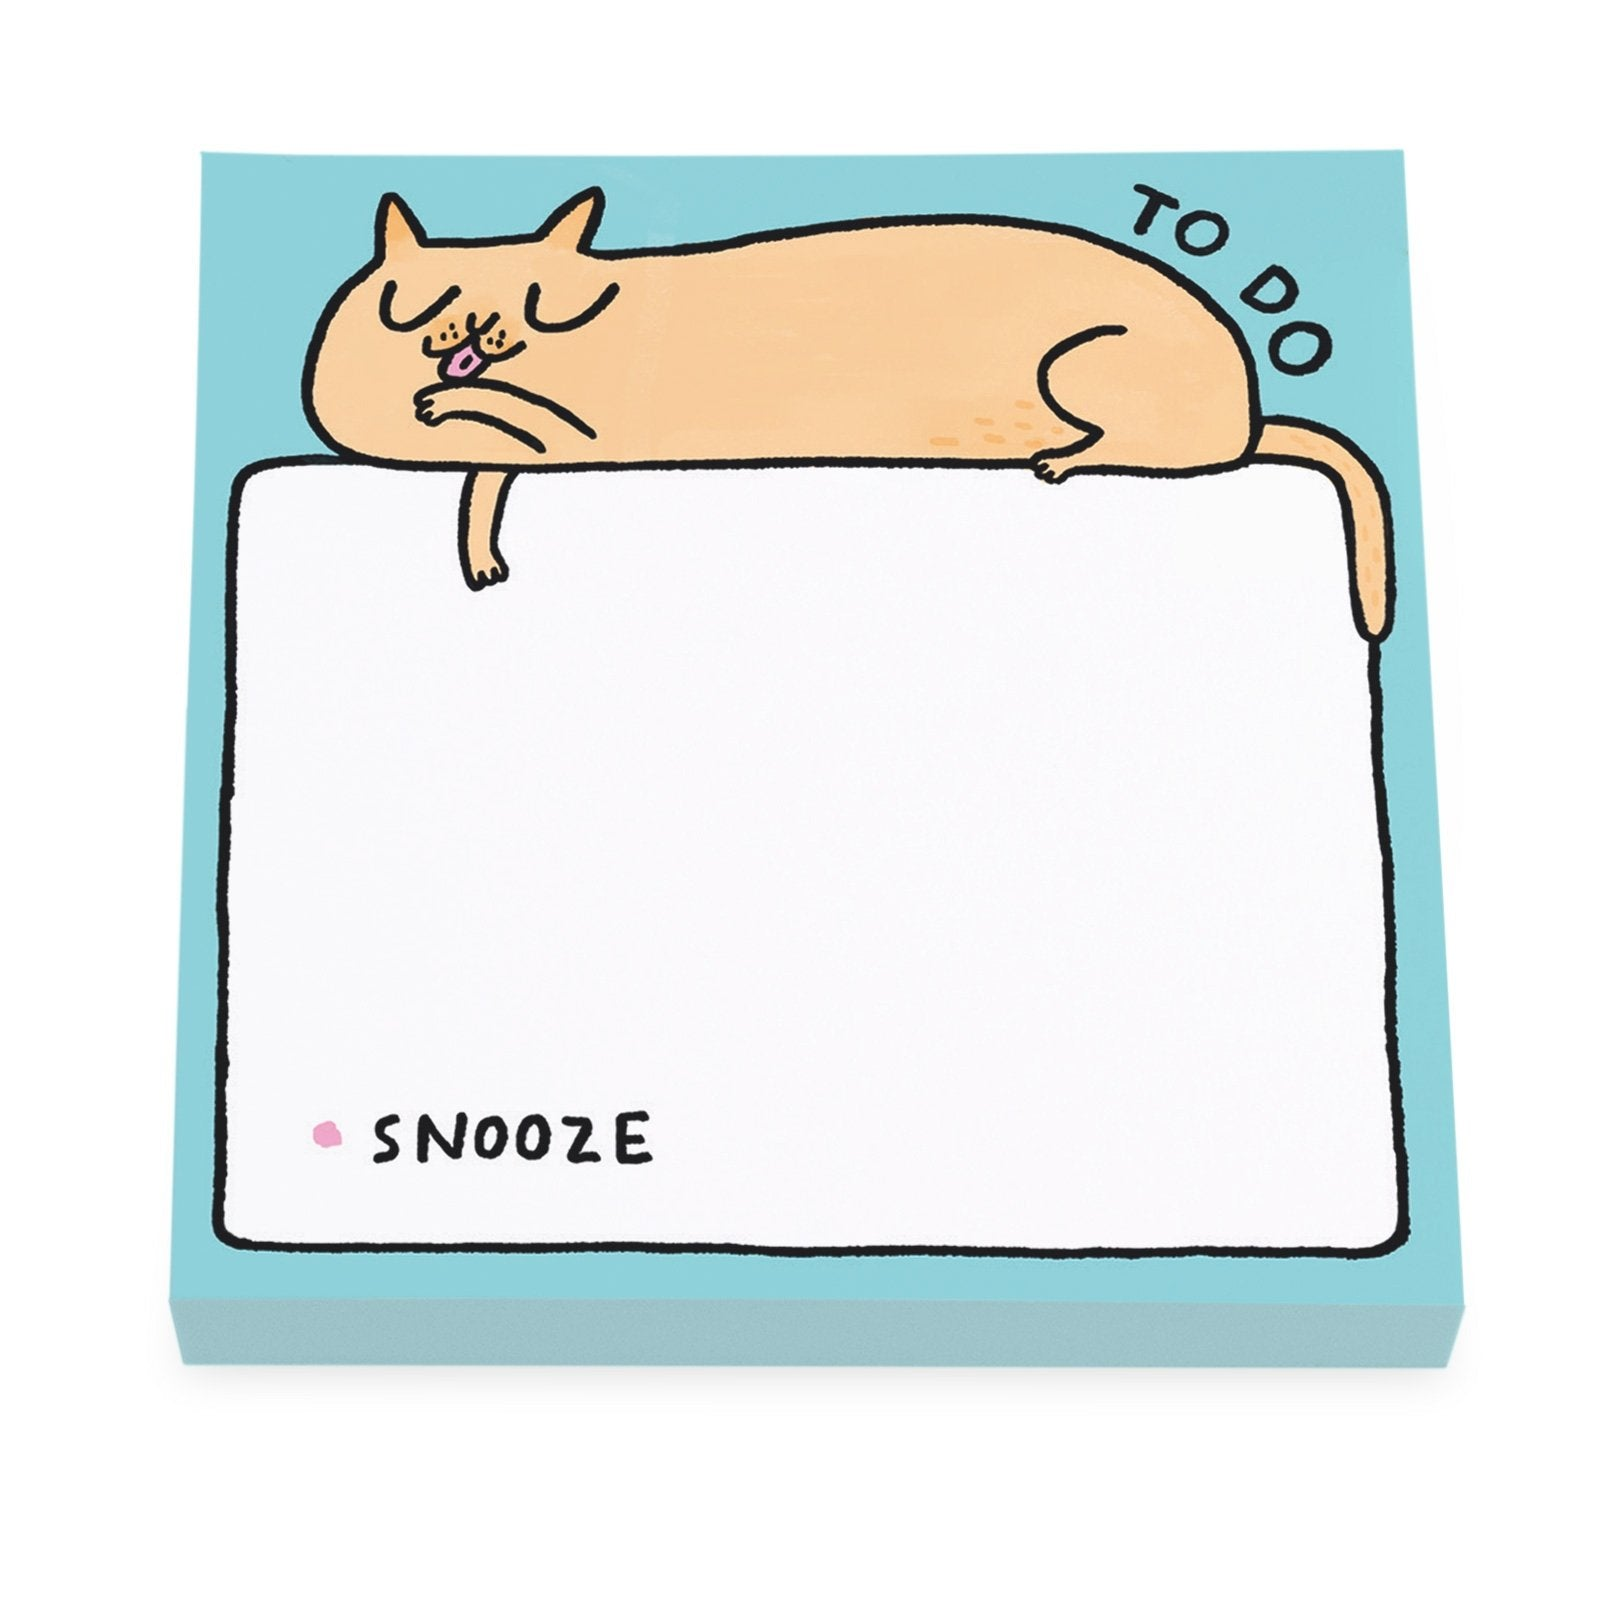 To Do Snooze Cat Sticky Notes